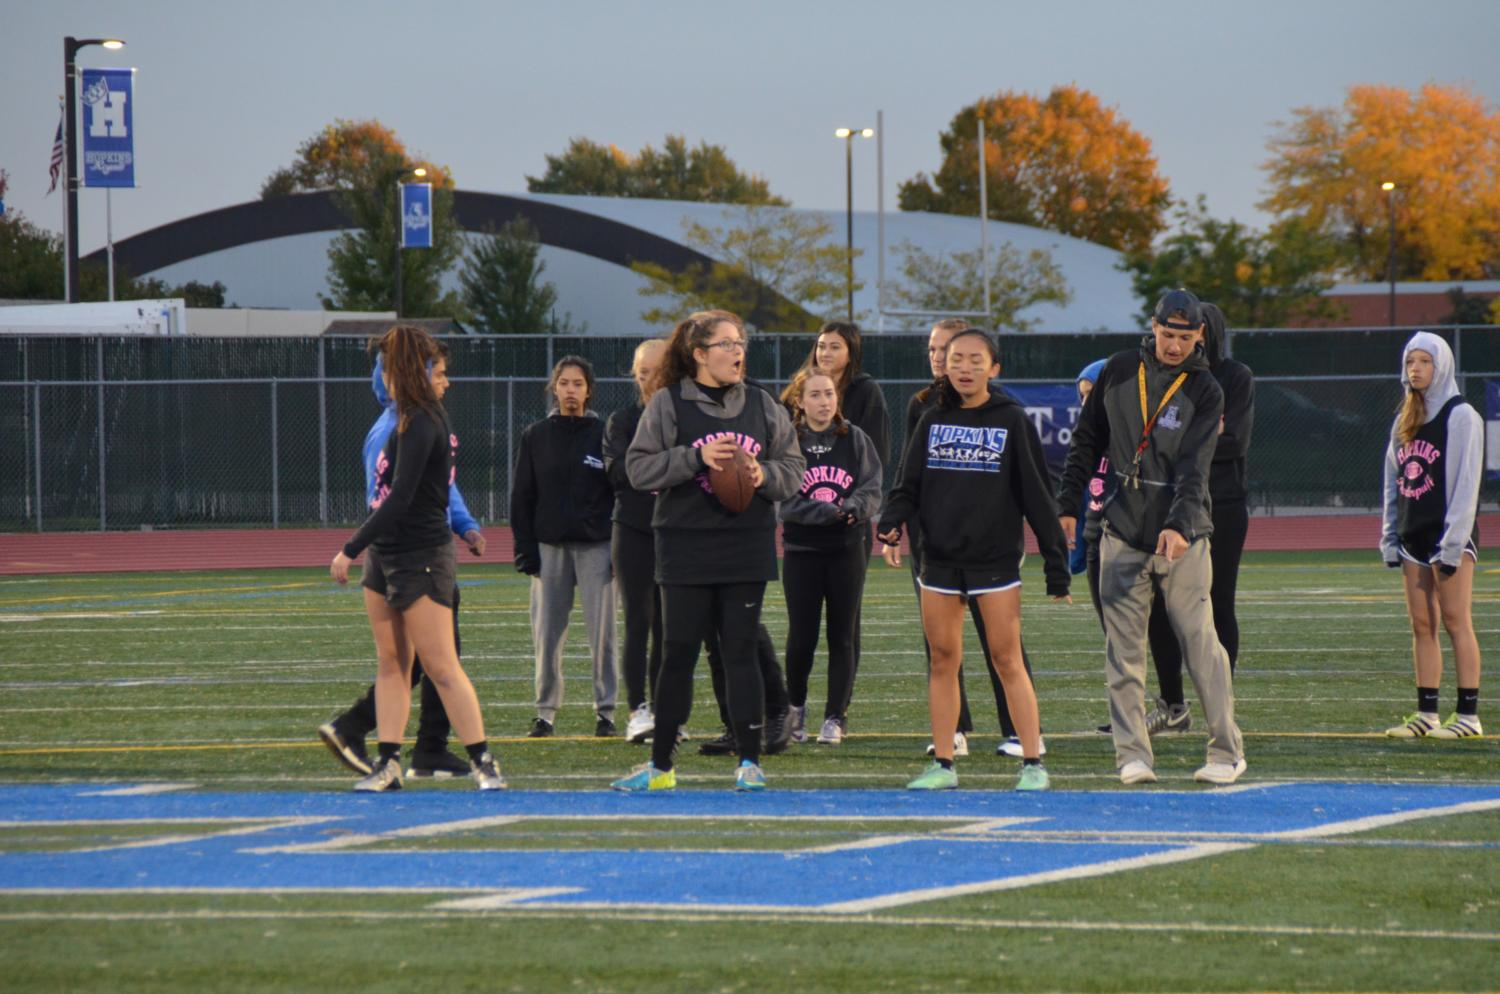 Senior ladies warm up at Powder Puff. The Seniors won 12-0.